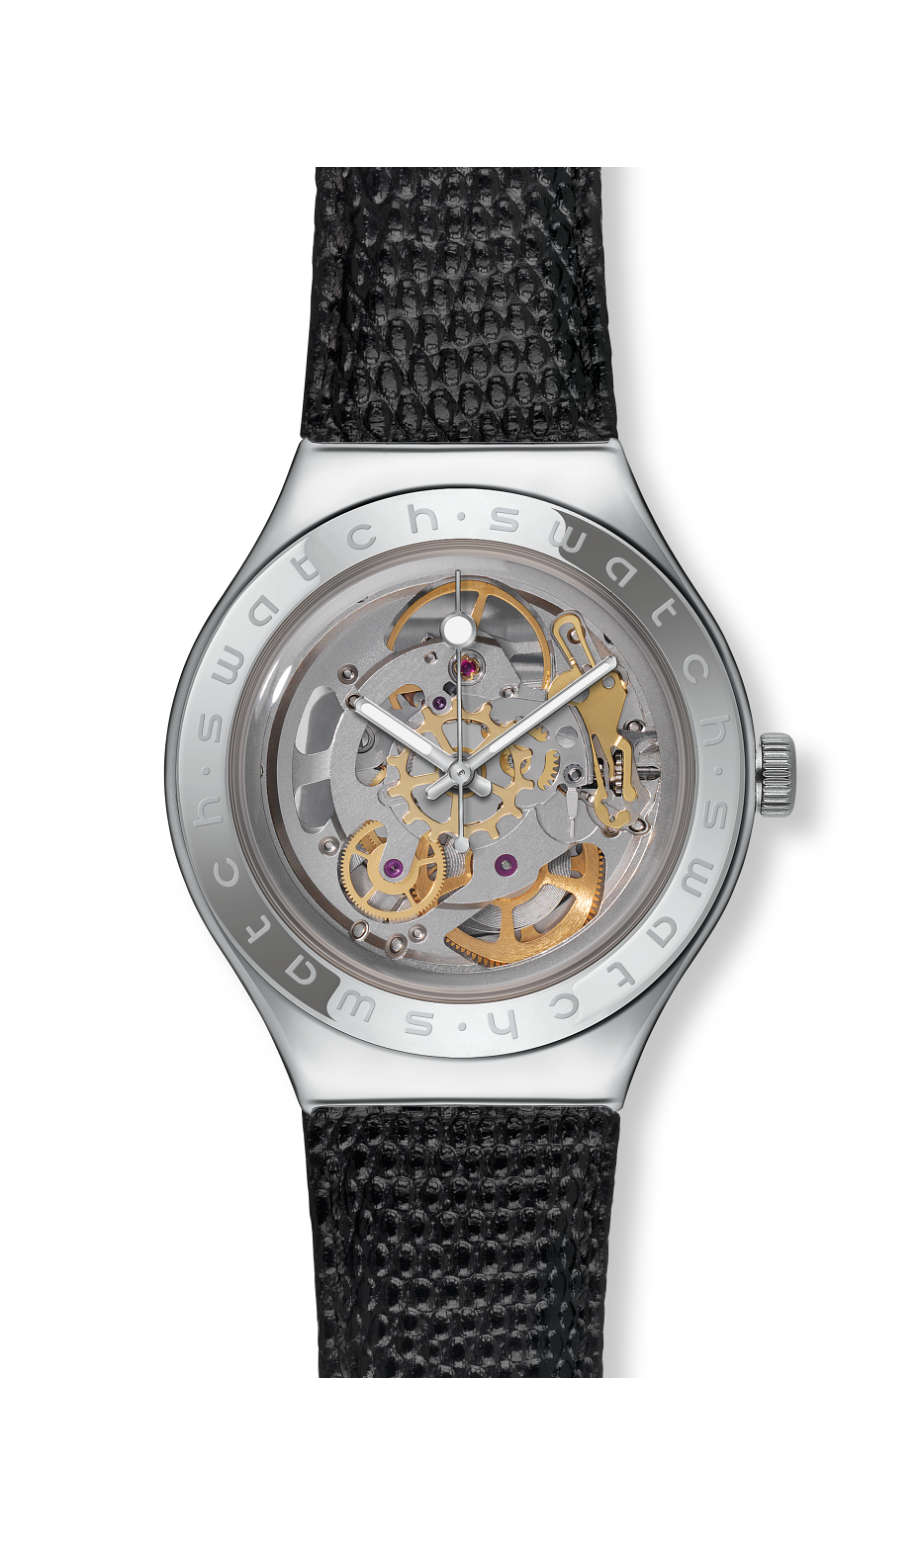 Swatch - BODY & SOUL  LEATHER - 1